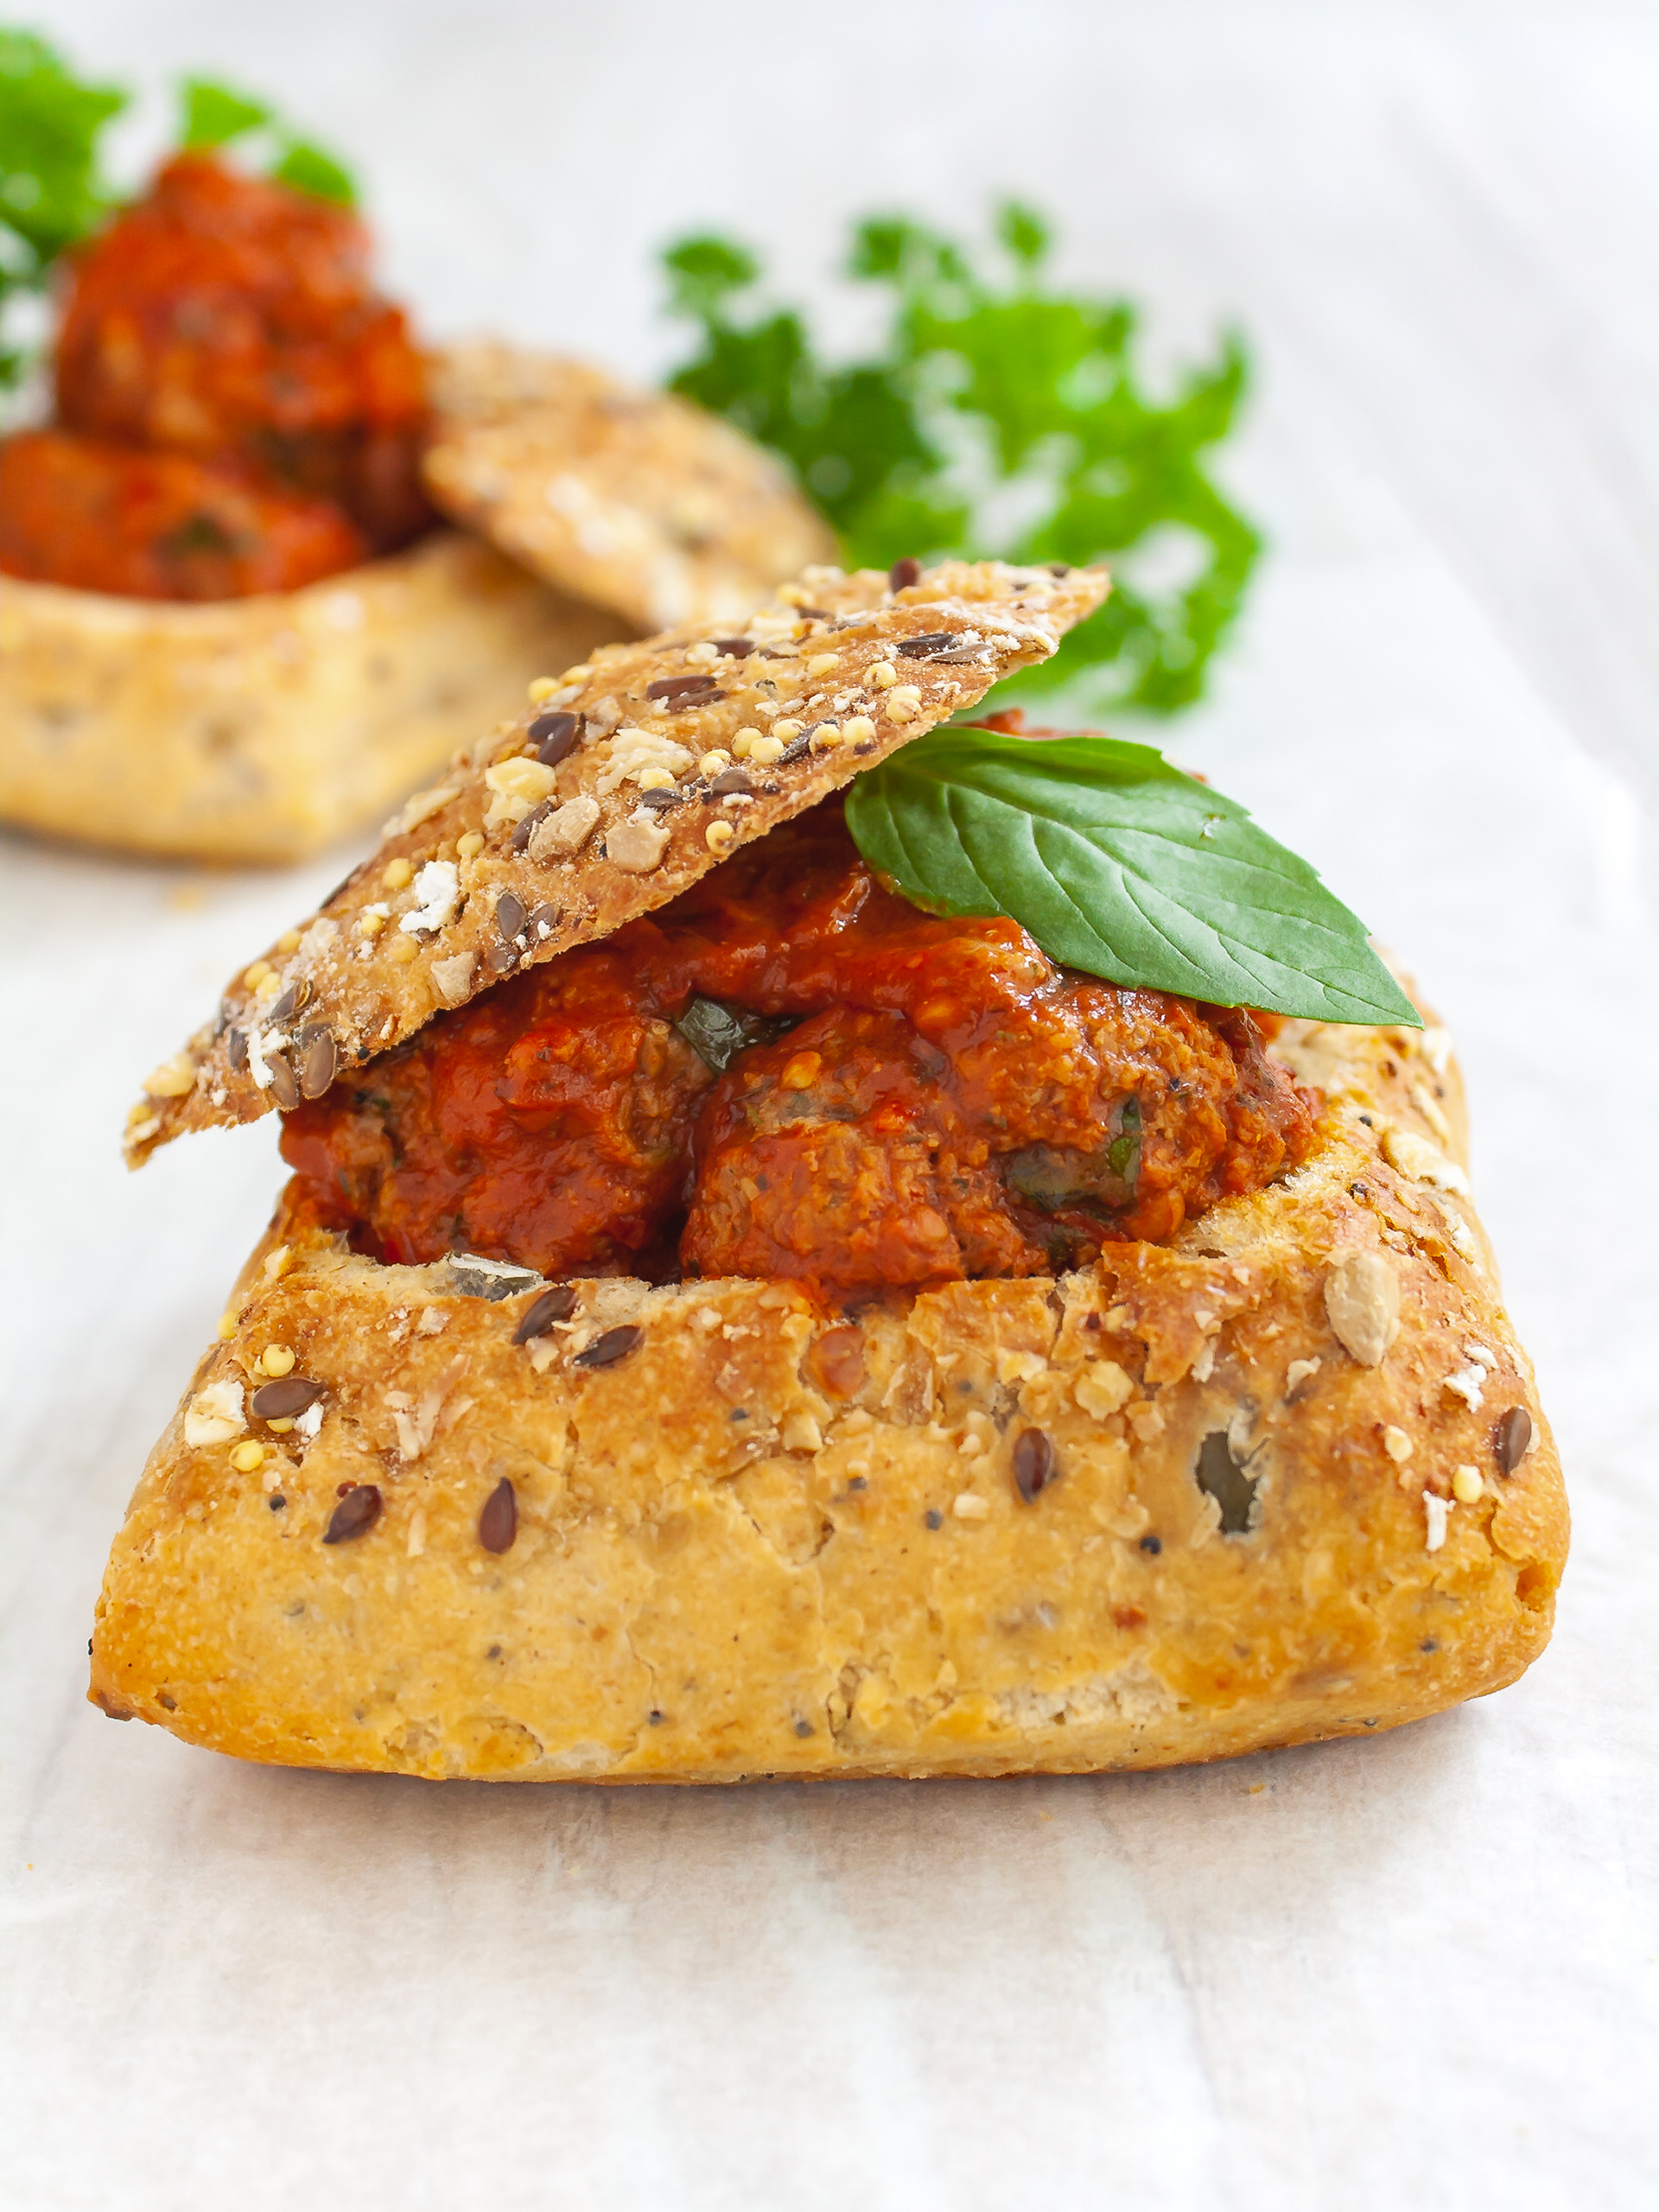 Healthy Gluten, Dairy and Egg-Free Meatballs in Bread Bowl Thumbnail